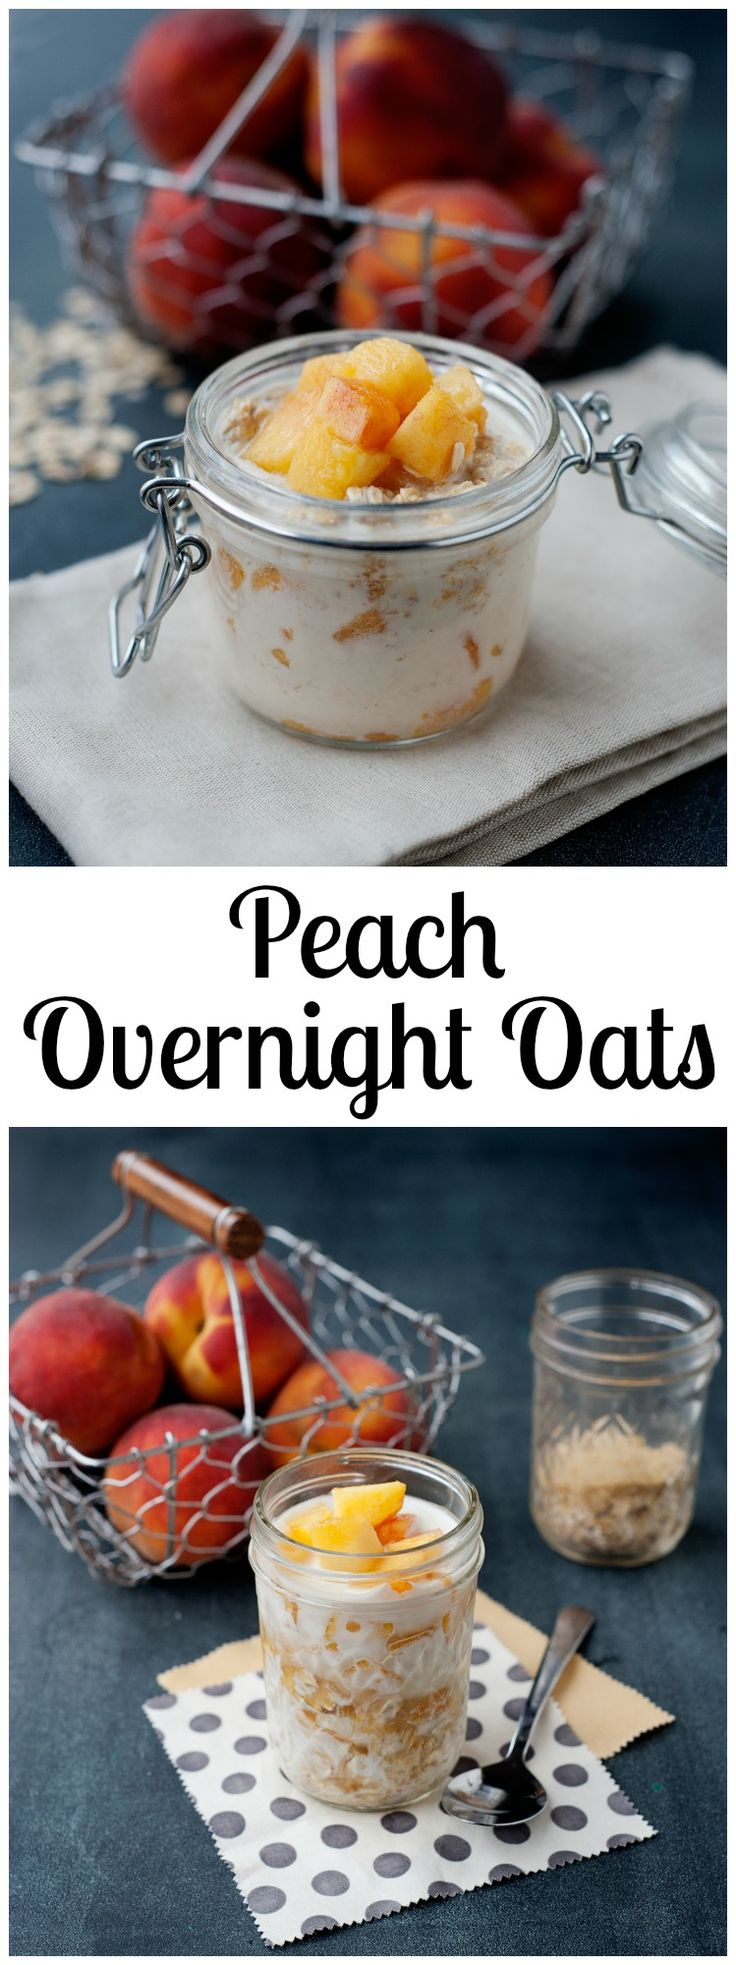 Peaches & Cream Overnight Oats from LauraFuentes.com